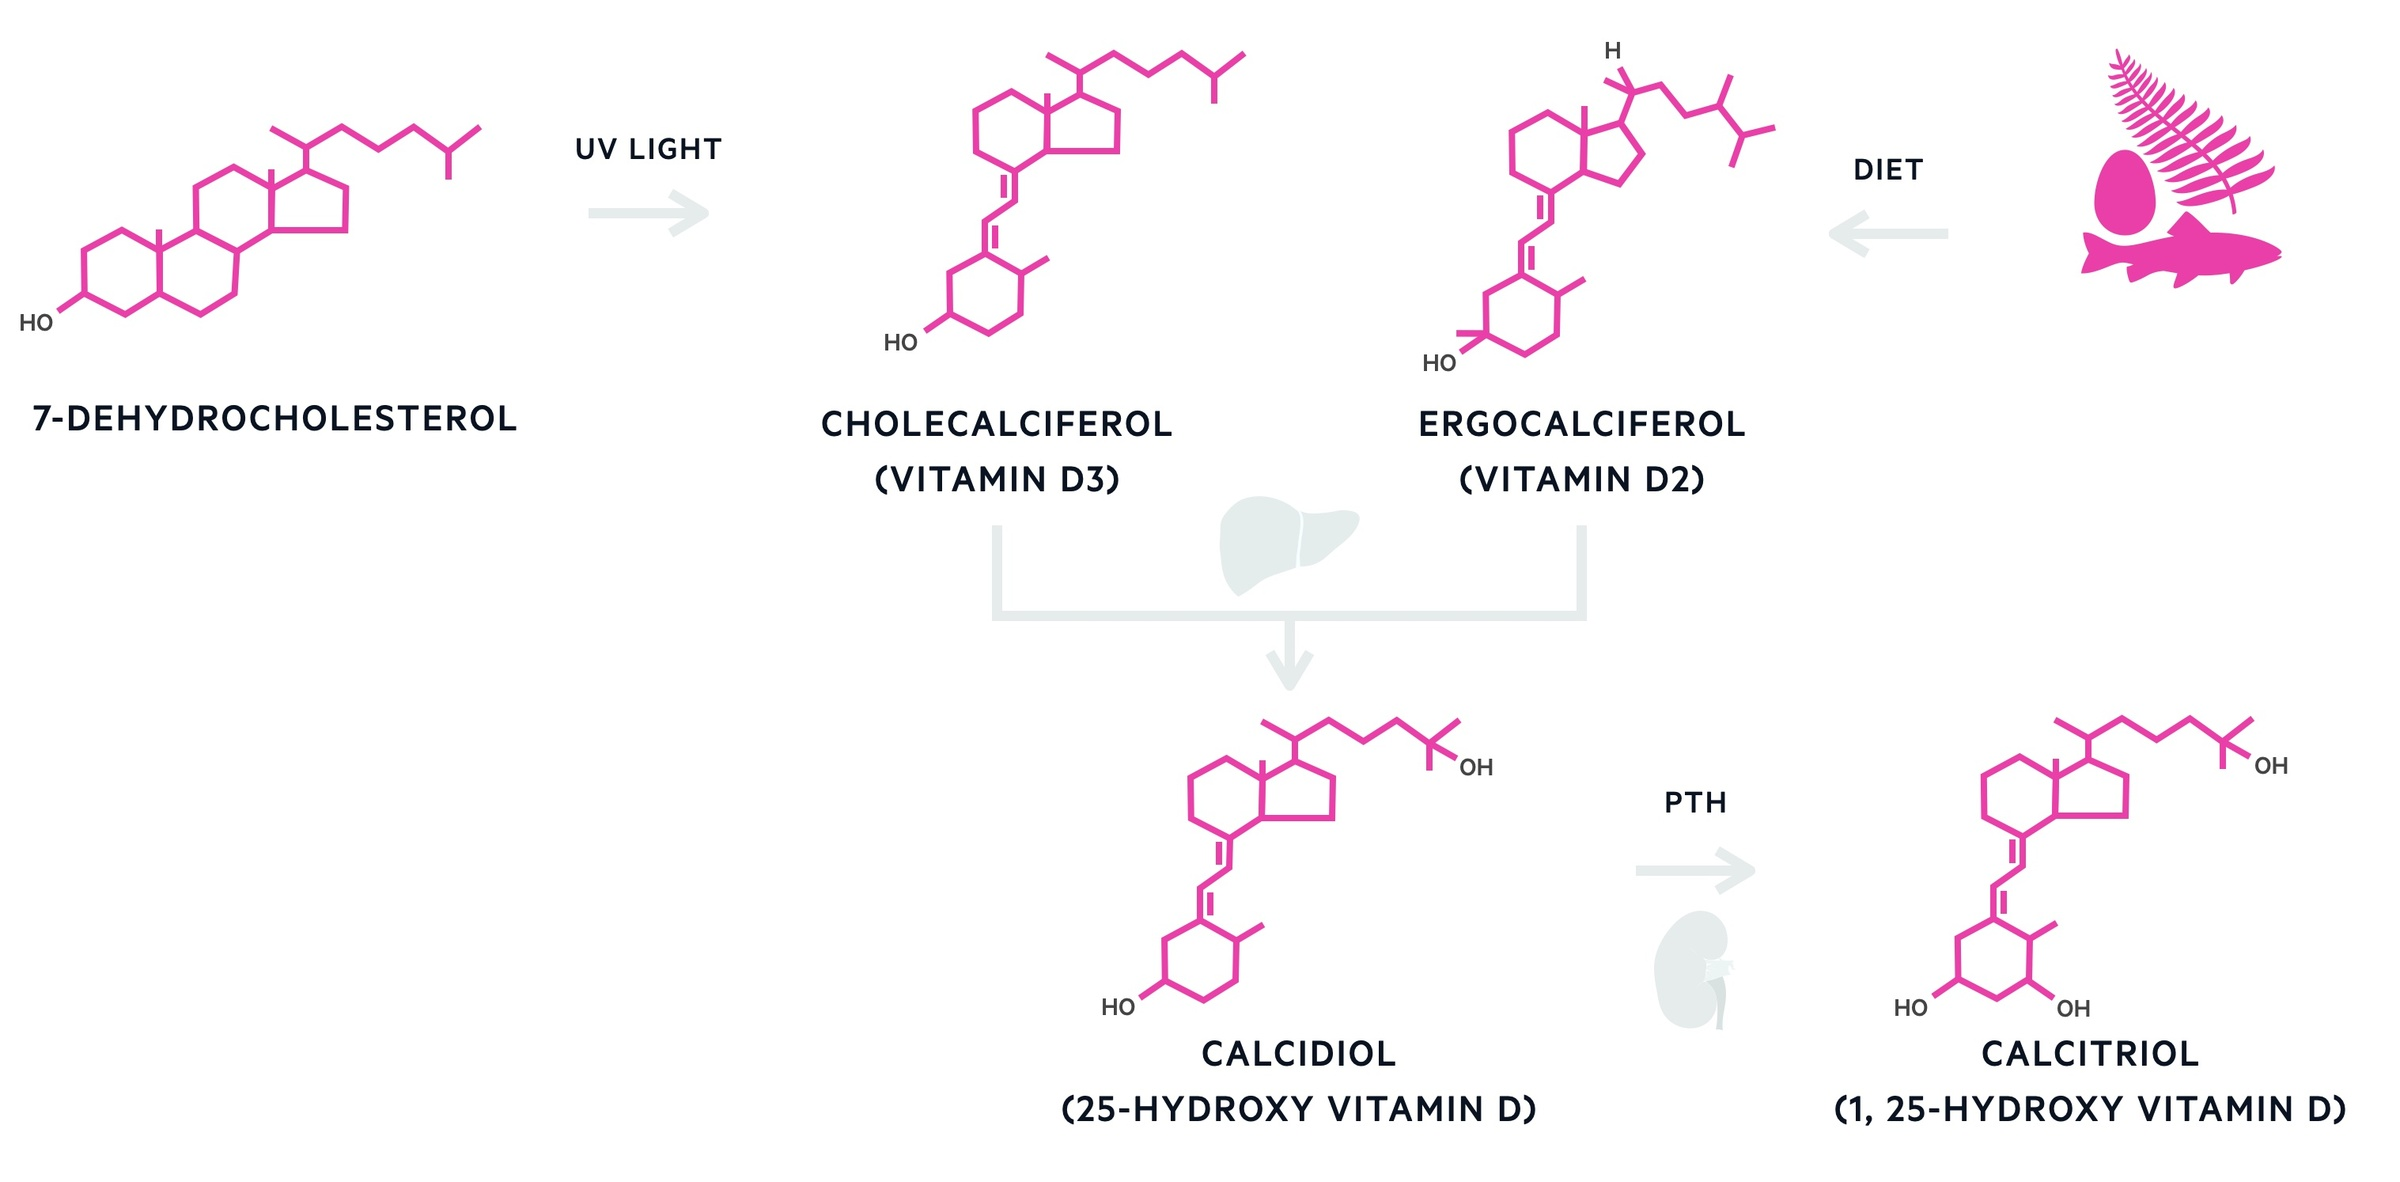 Production of calcitriol (activation of vitamin d)